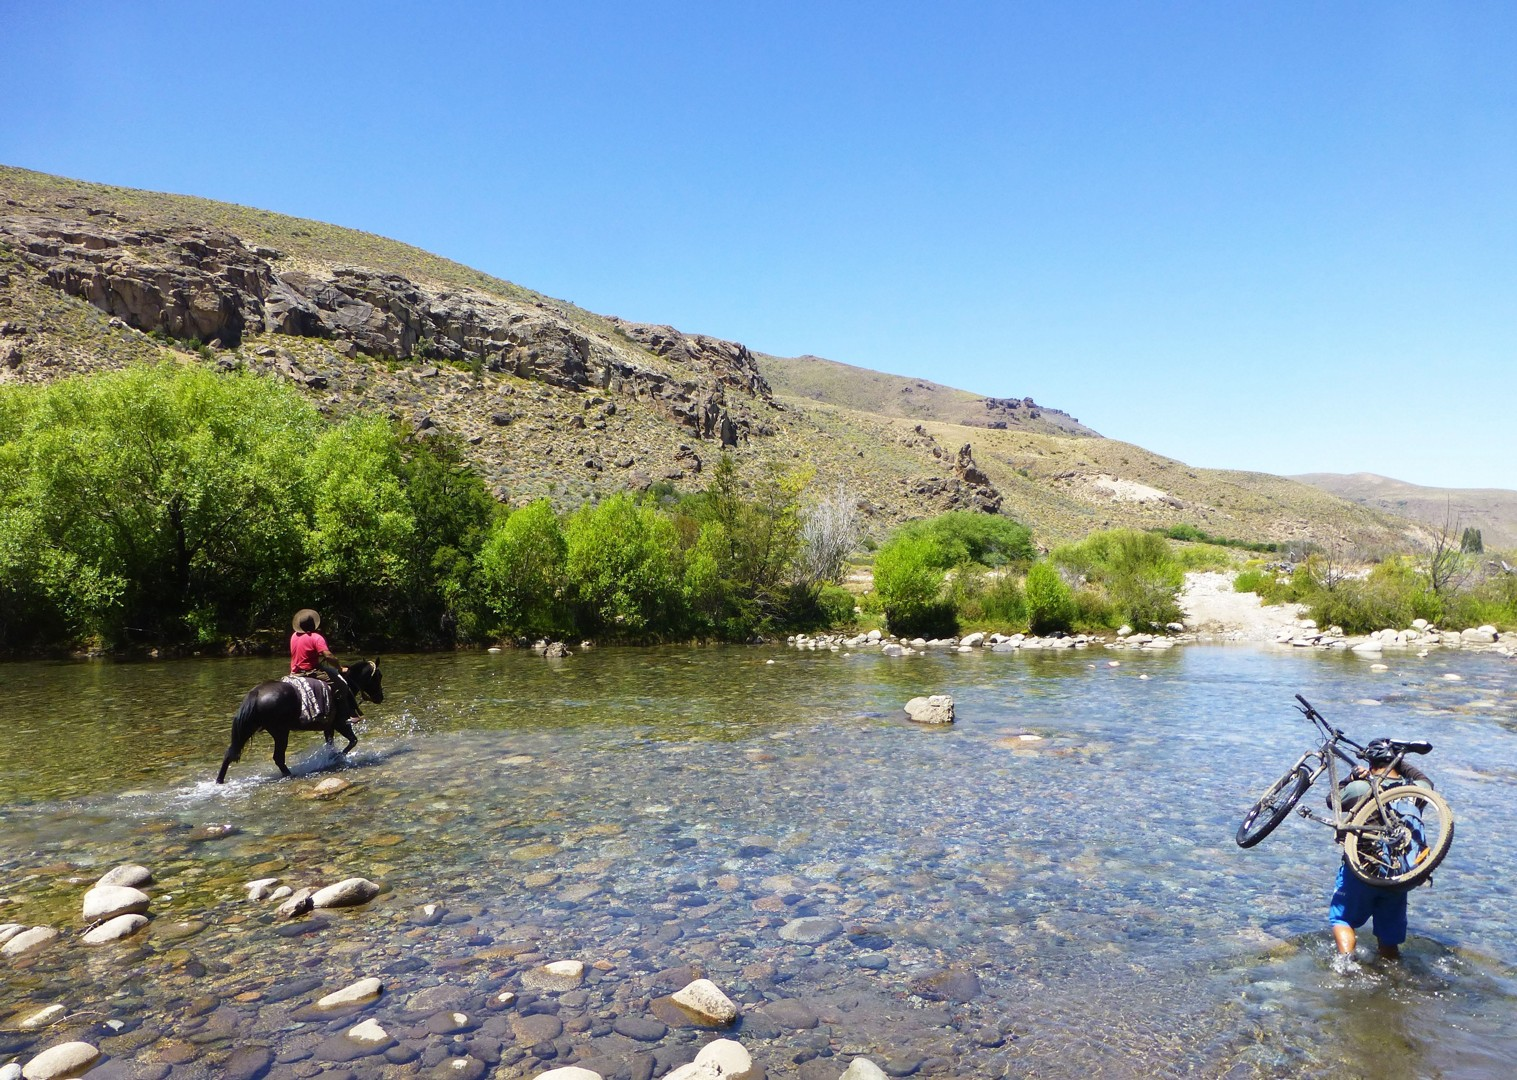 _Holiday.711.13649.jpg - Chile and Argentina - Wild Patagonia - Guided Mountain Bike Holiday - Mountain Biking